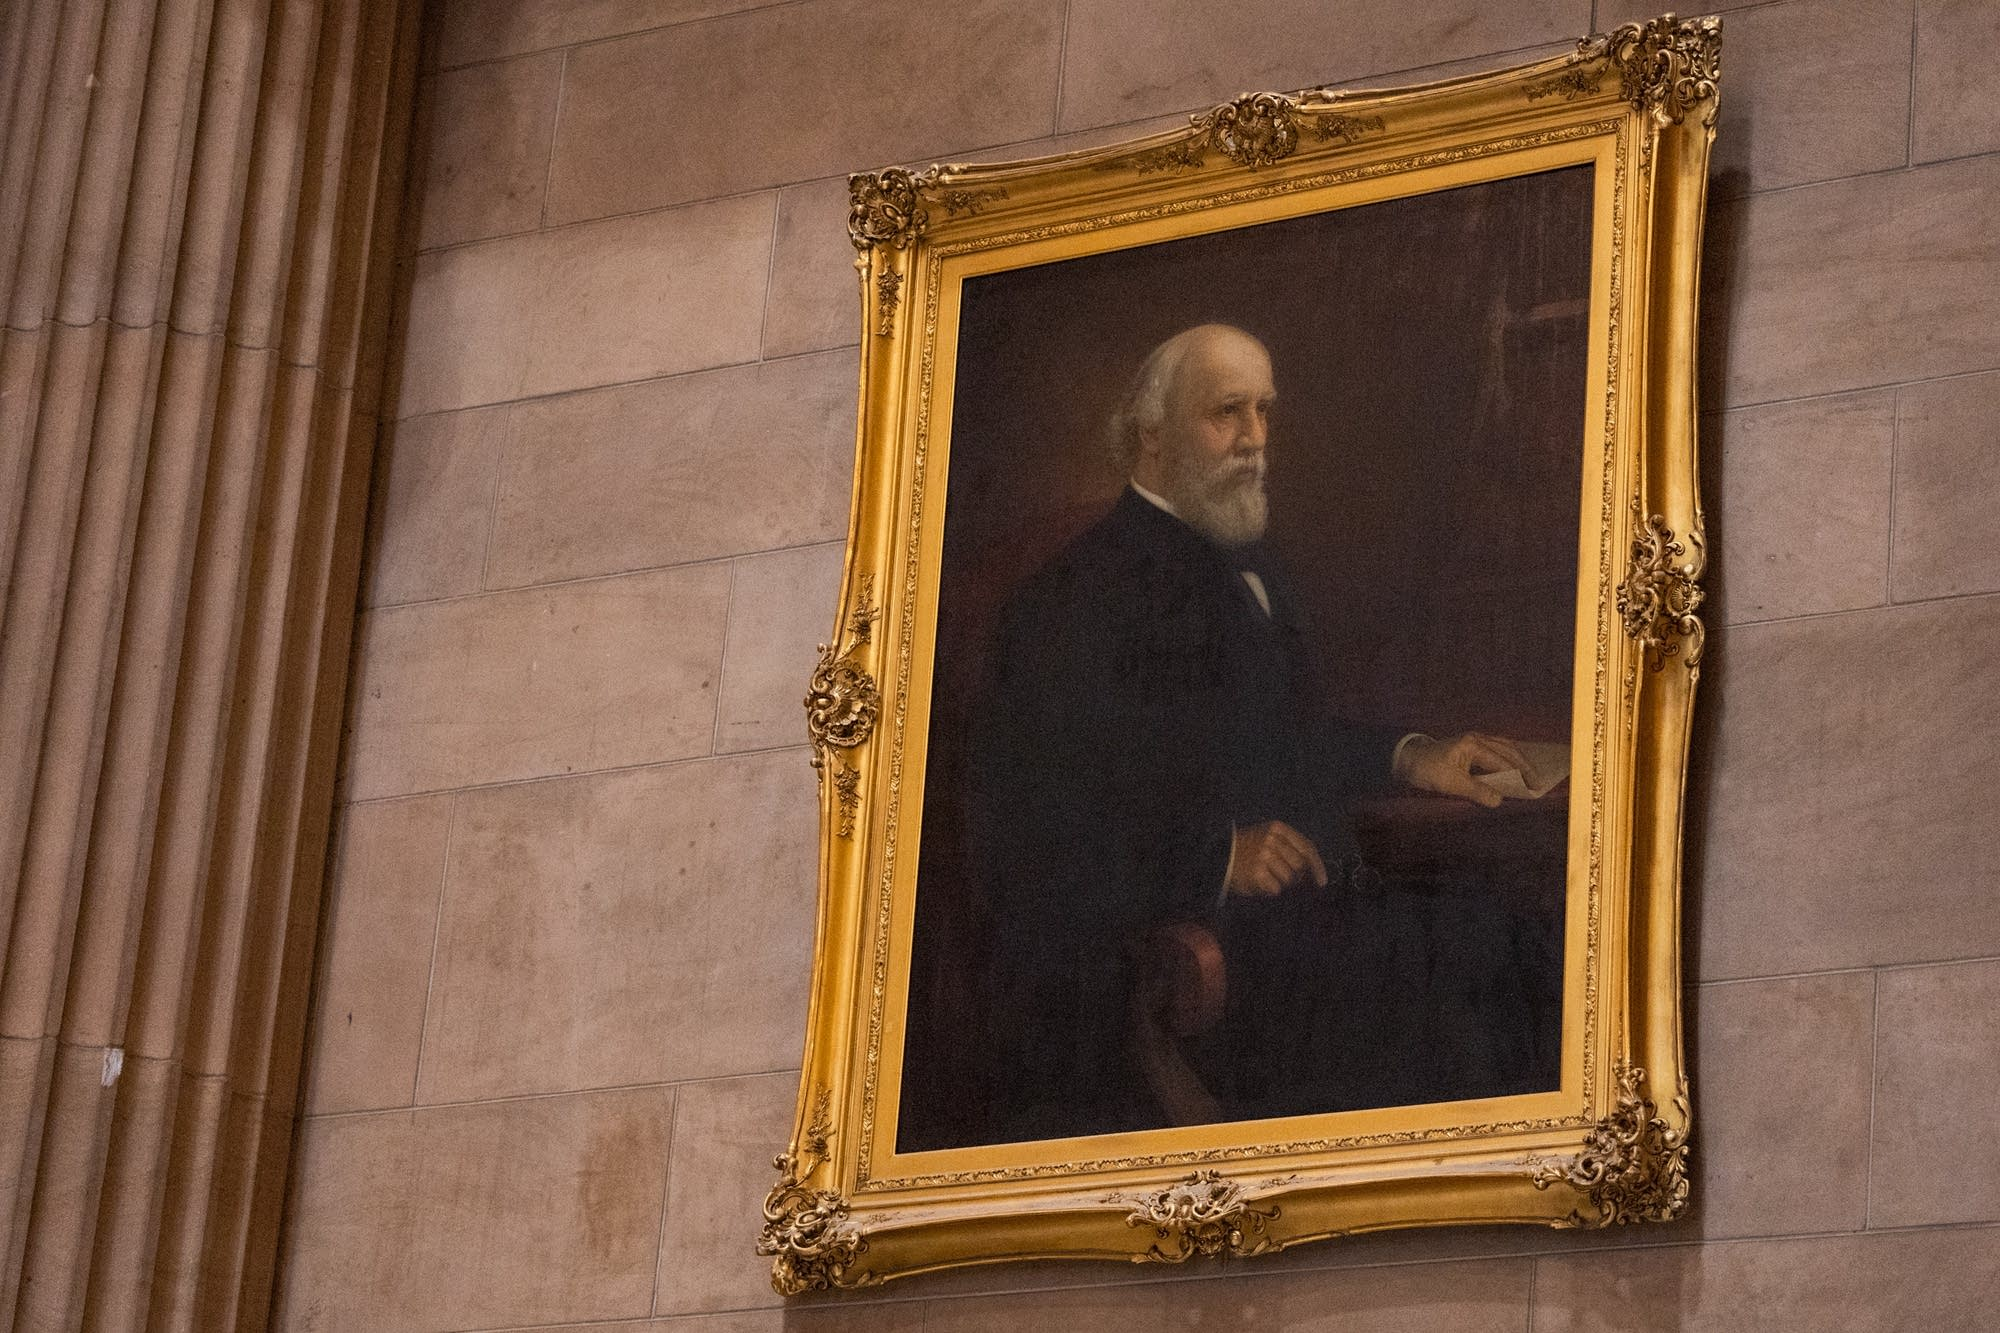 A portrait of James J. Hill hangs above the reading room.